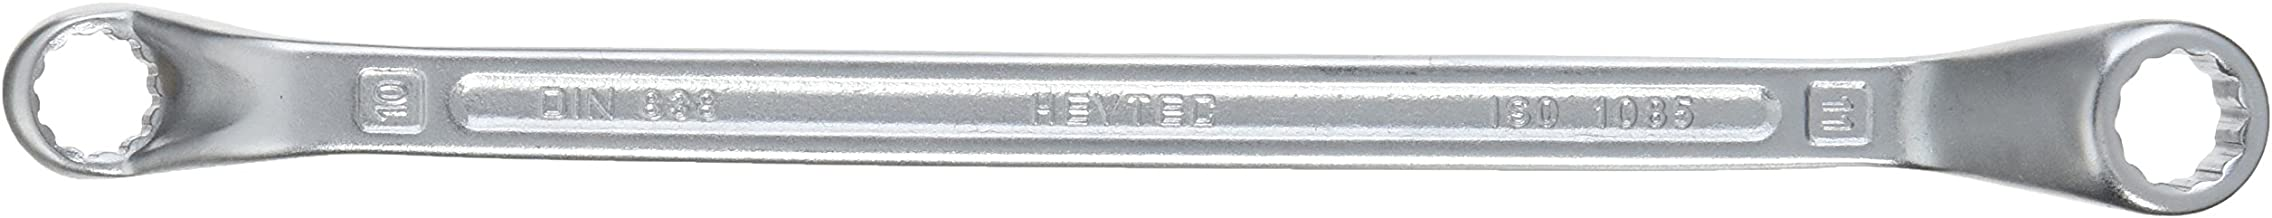 Heytec Double Ended Ring Wrench Deep Offset 10X11mm - 50805101180